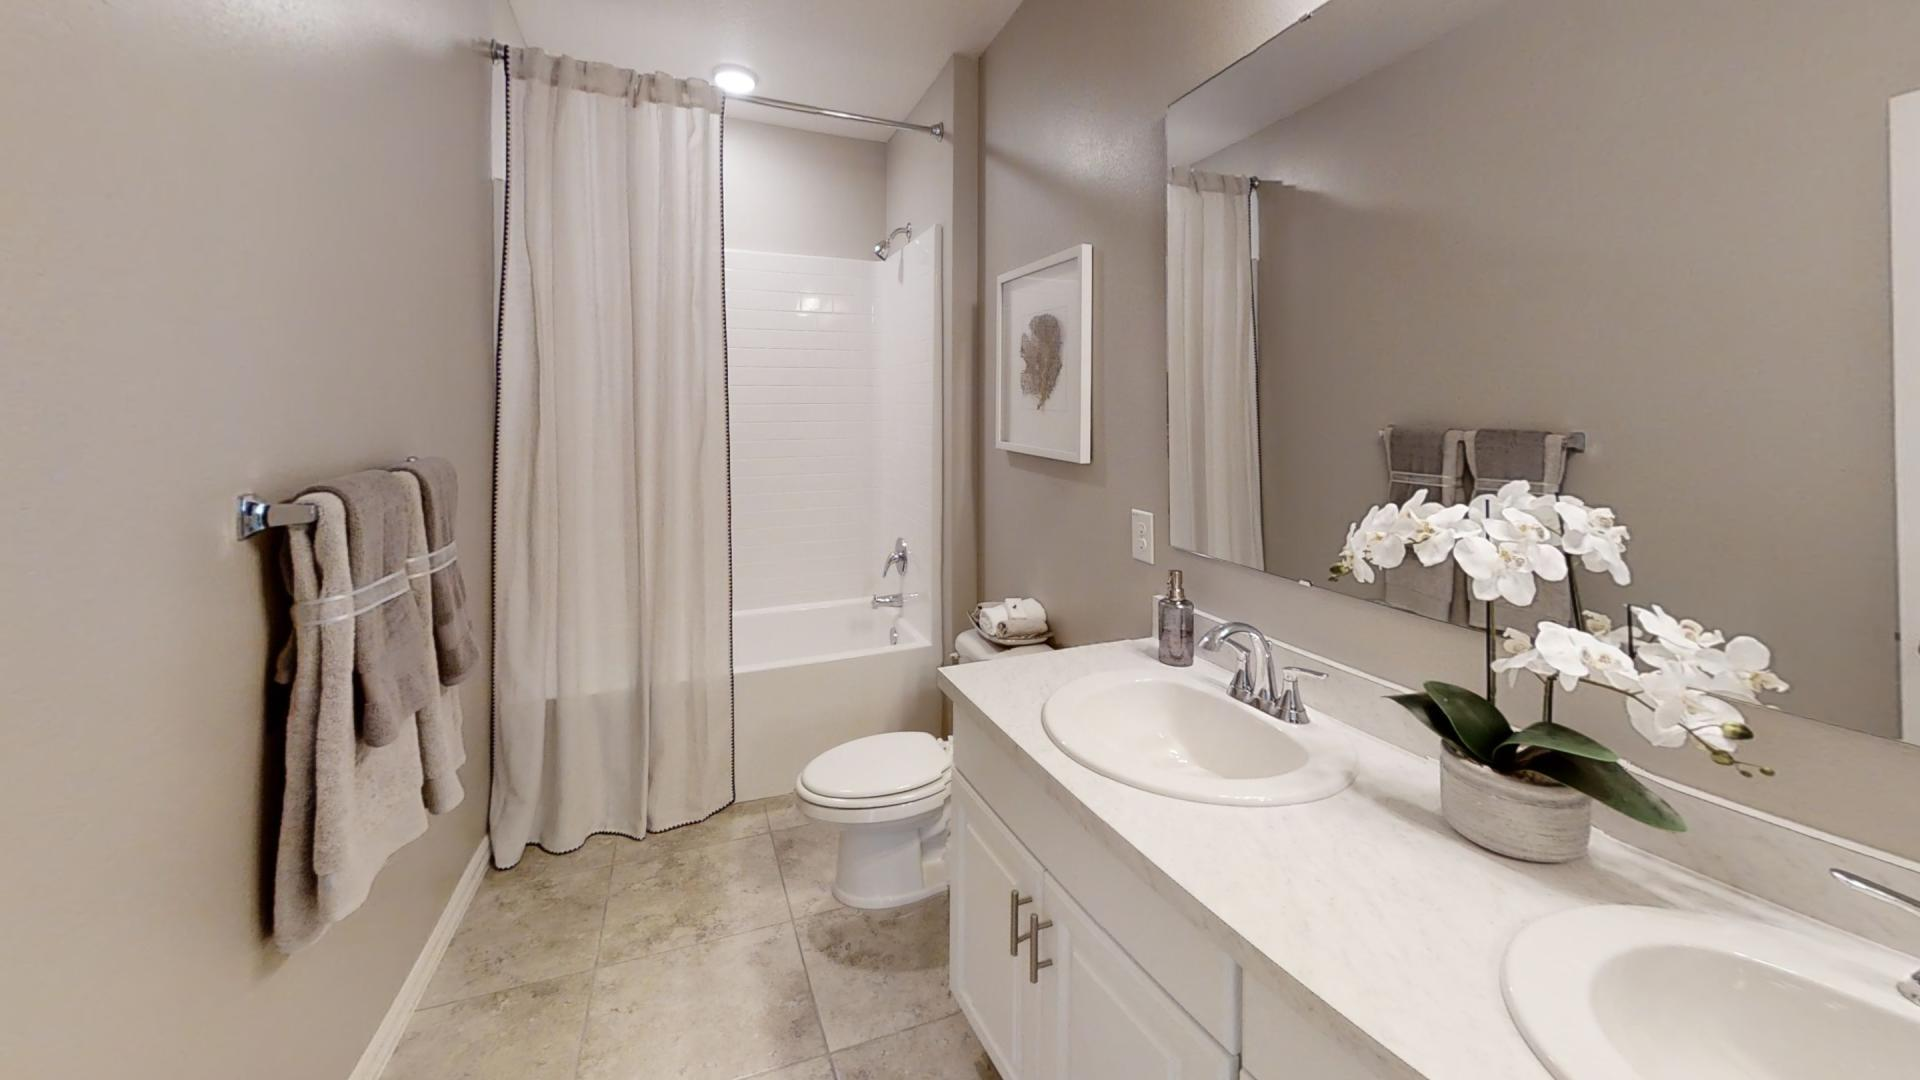 Bathroom featured in the Mesquite By Maronda Homes in Jacksonville-St. Augustine, GA